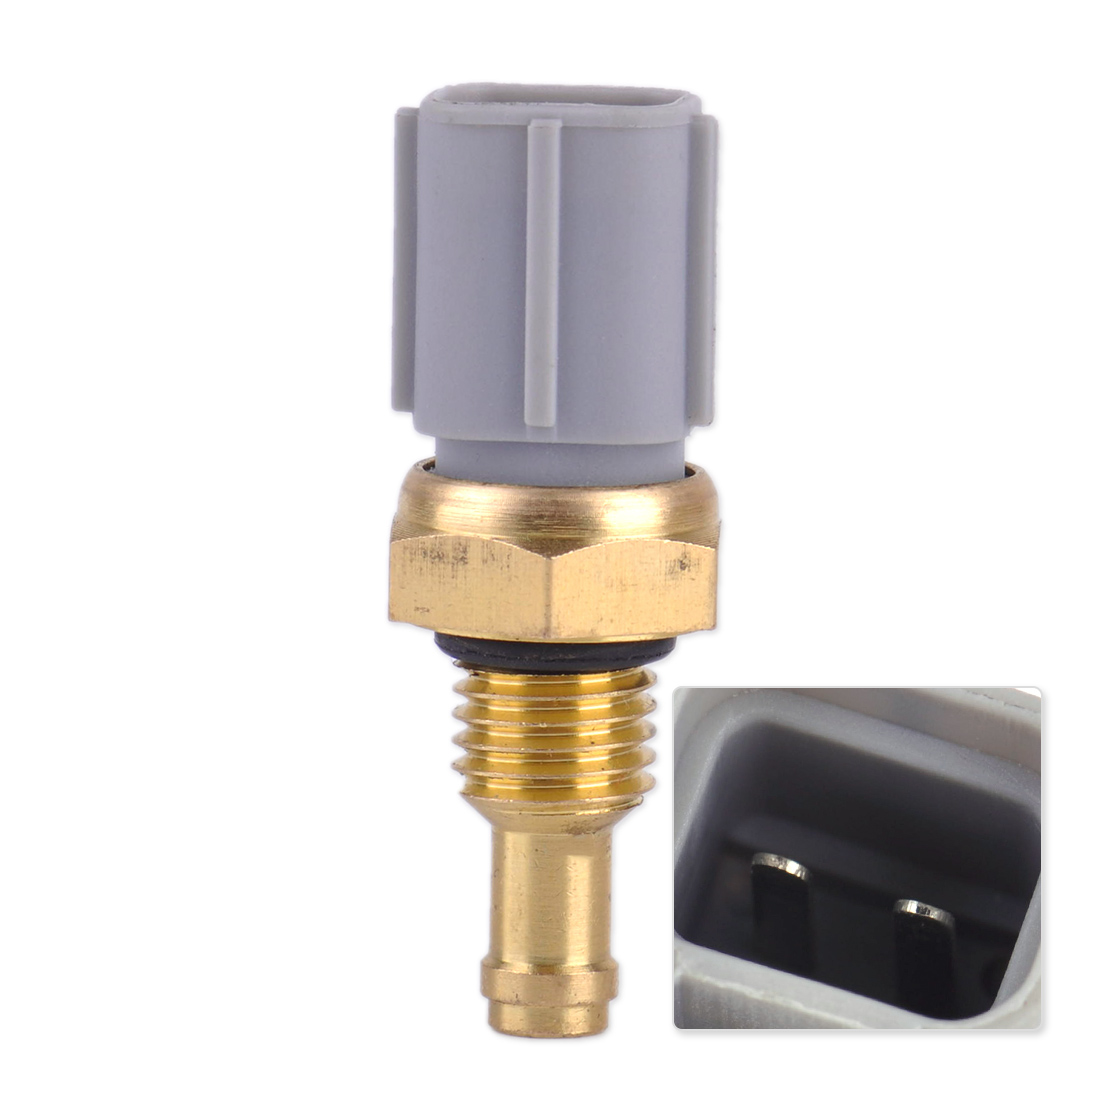 CITALL Car Engine Coolant Temperature Sensor for Mazda 3 5 6 CX-7 CX-9 Ford Fusion Mercury Milan LRA1600BA 4537712 3929104